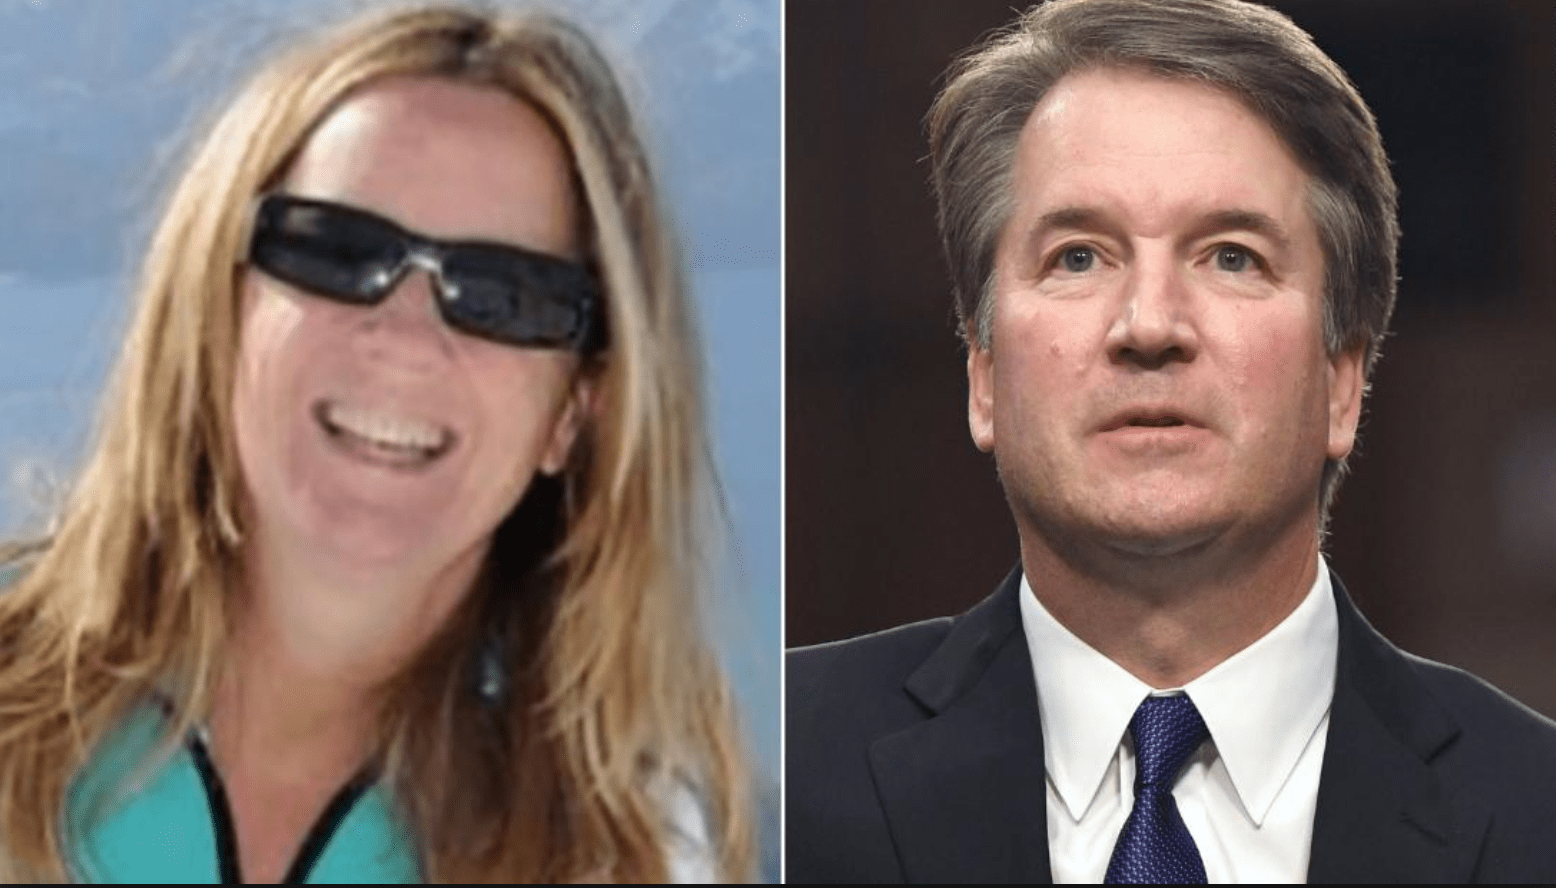 Brett Kavanaugh confirmation hearings continue with Christine Blasey Ford testimony